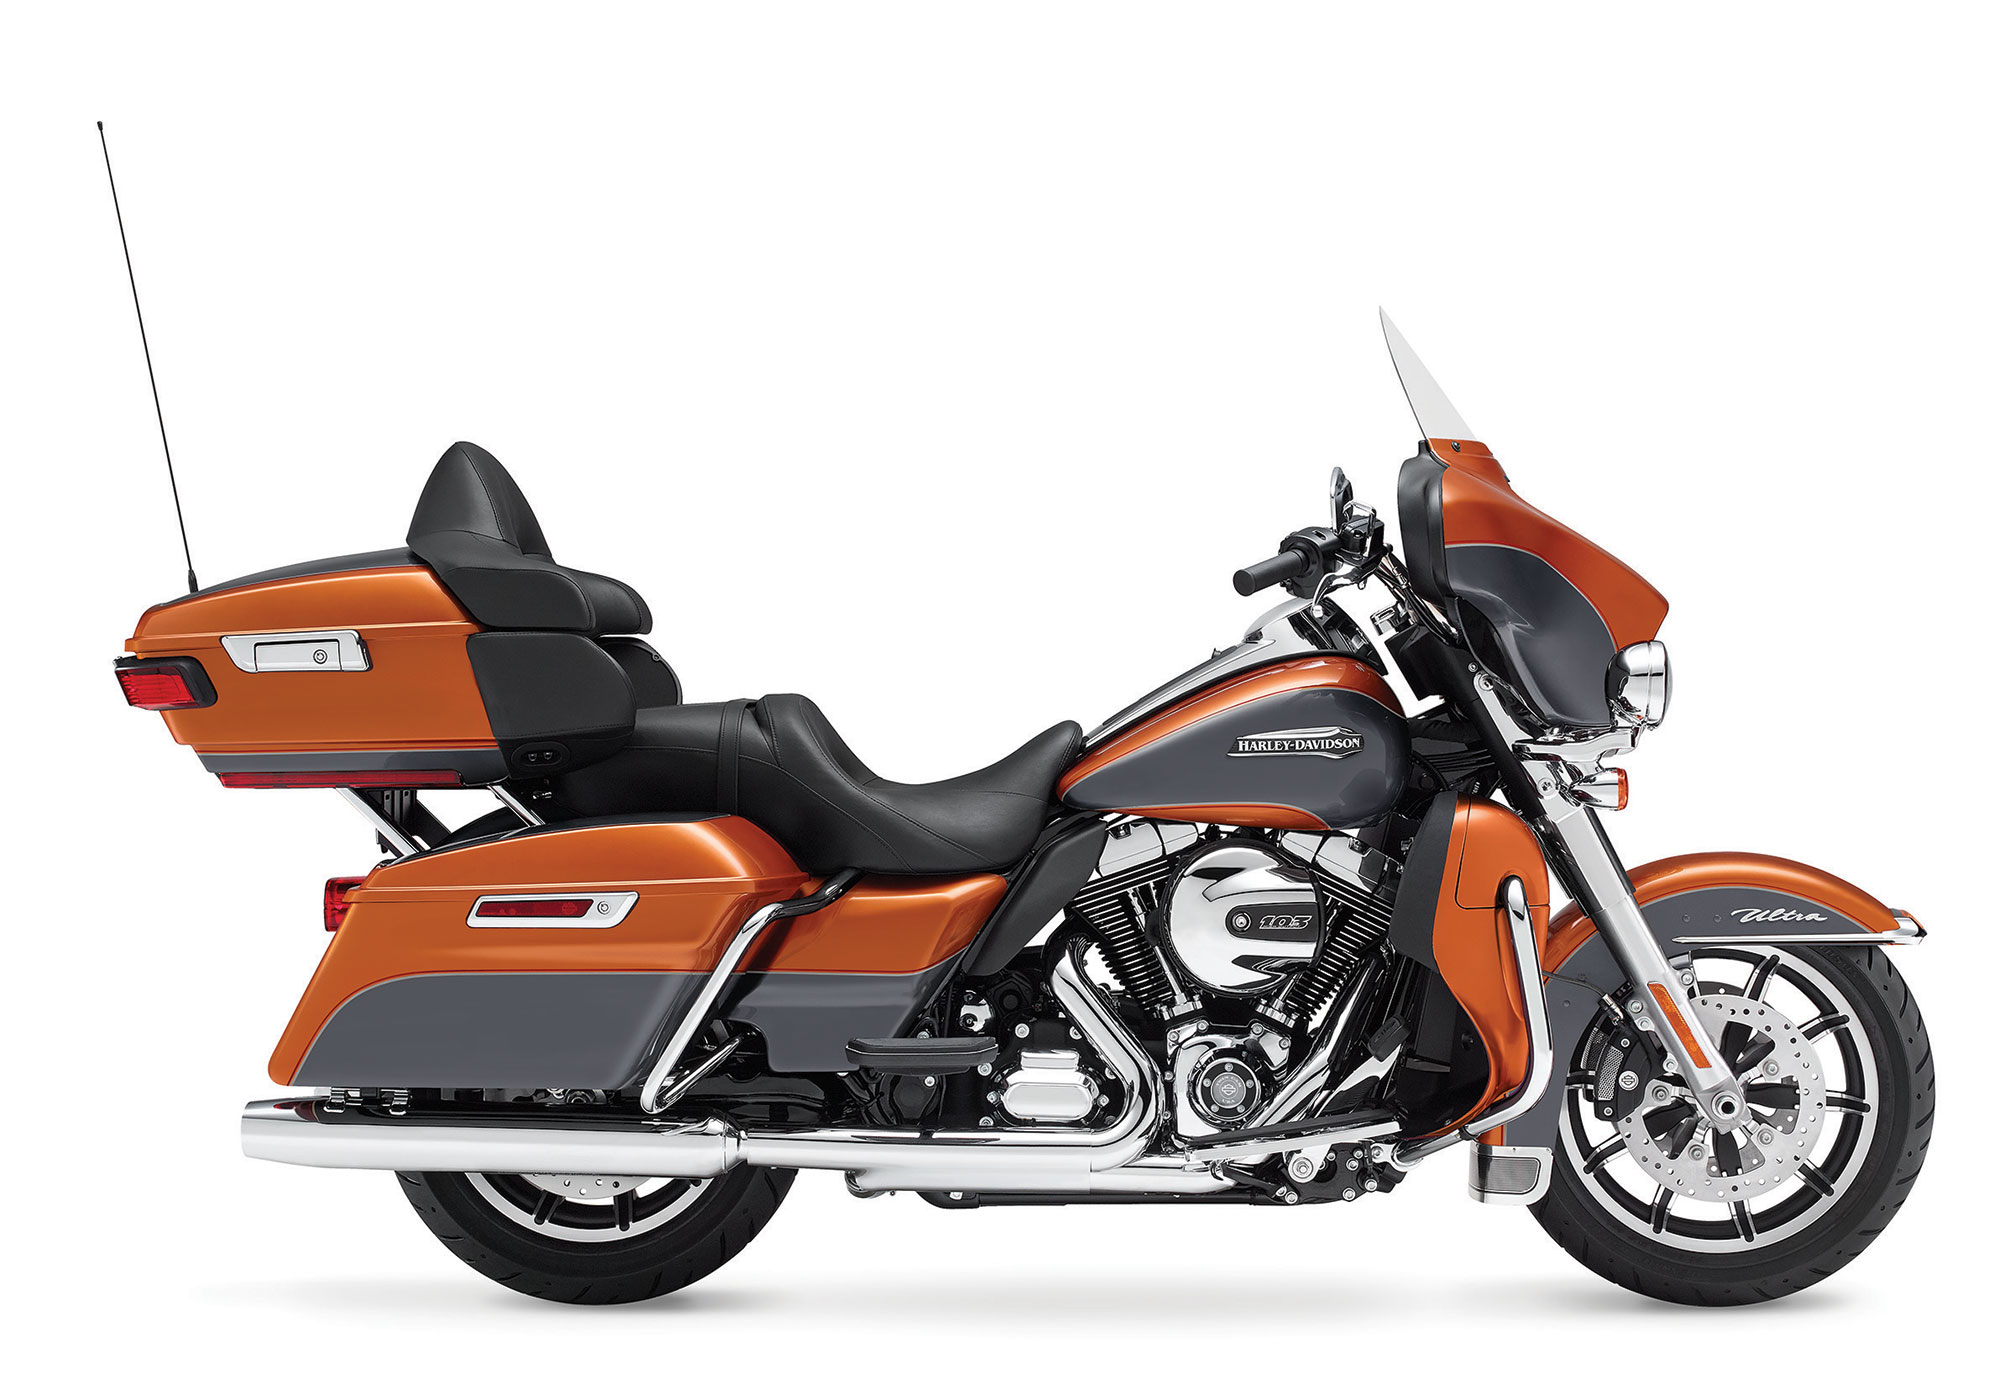 2015 Harley Davidson FLHTCU ElectraGlideUltraClassic2 2015 harley davidson flhtcu electra glide ultra classic review Wiring Diagrams Harley Panhead at creativeand.co